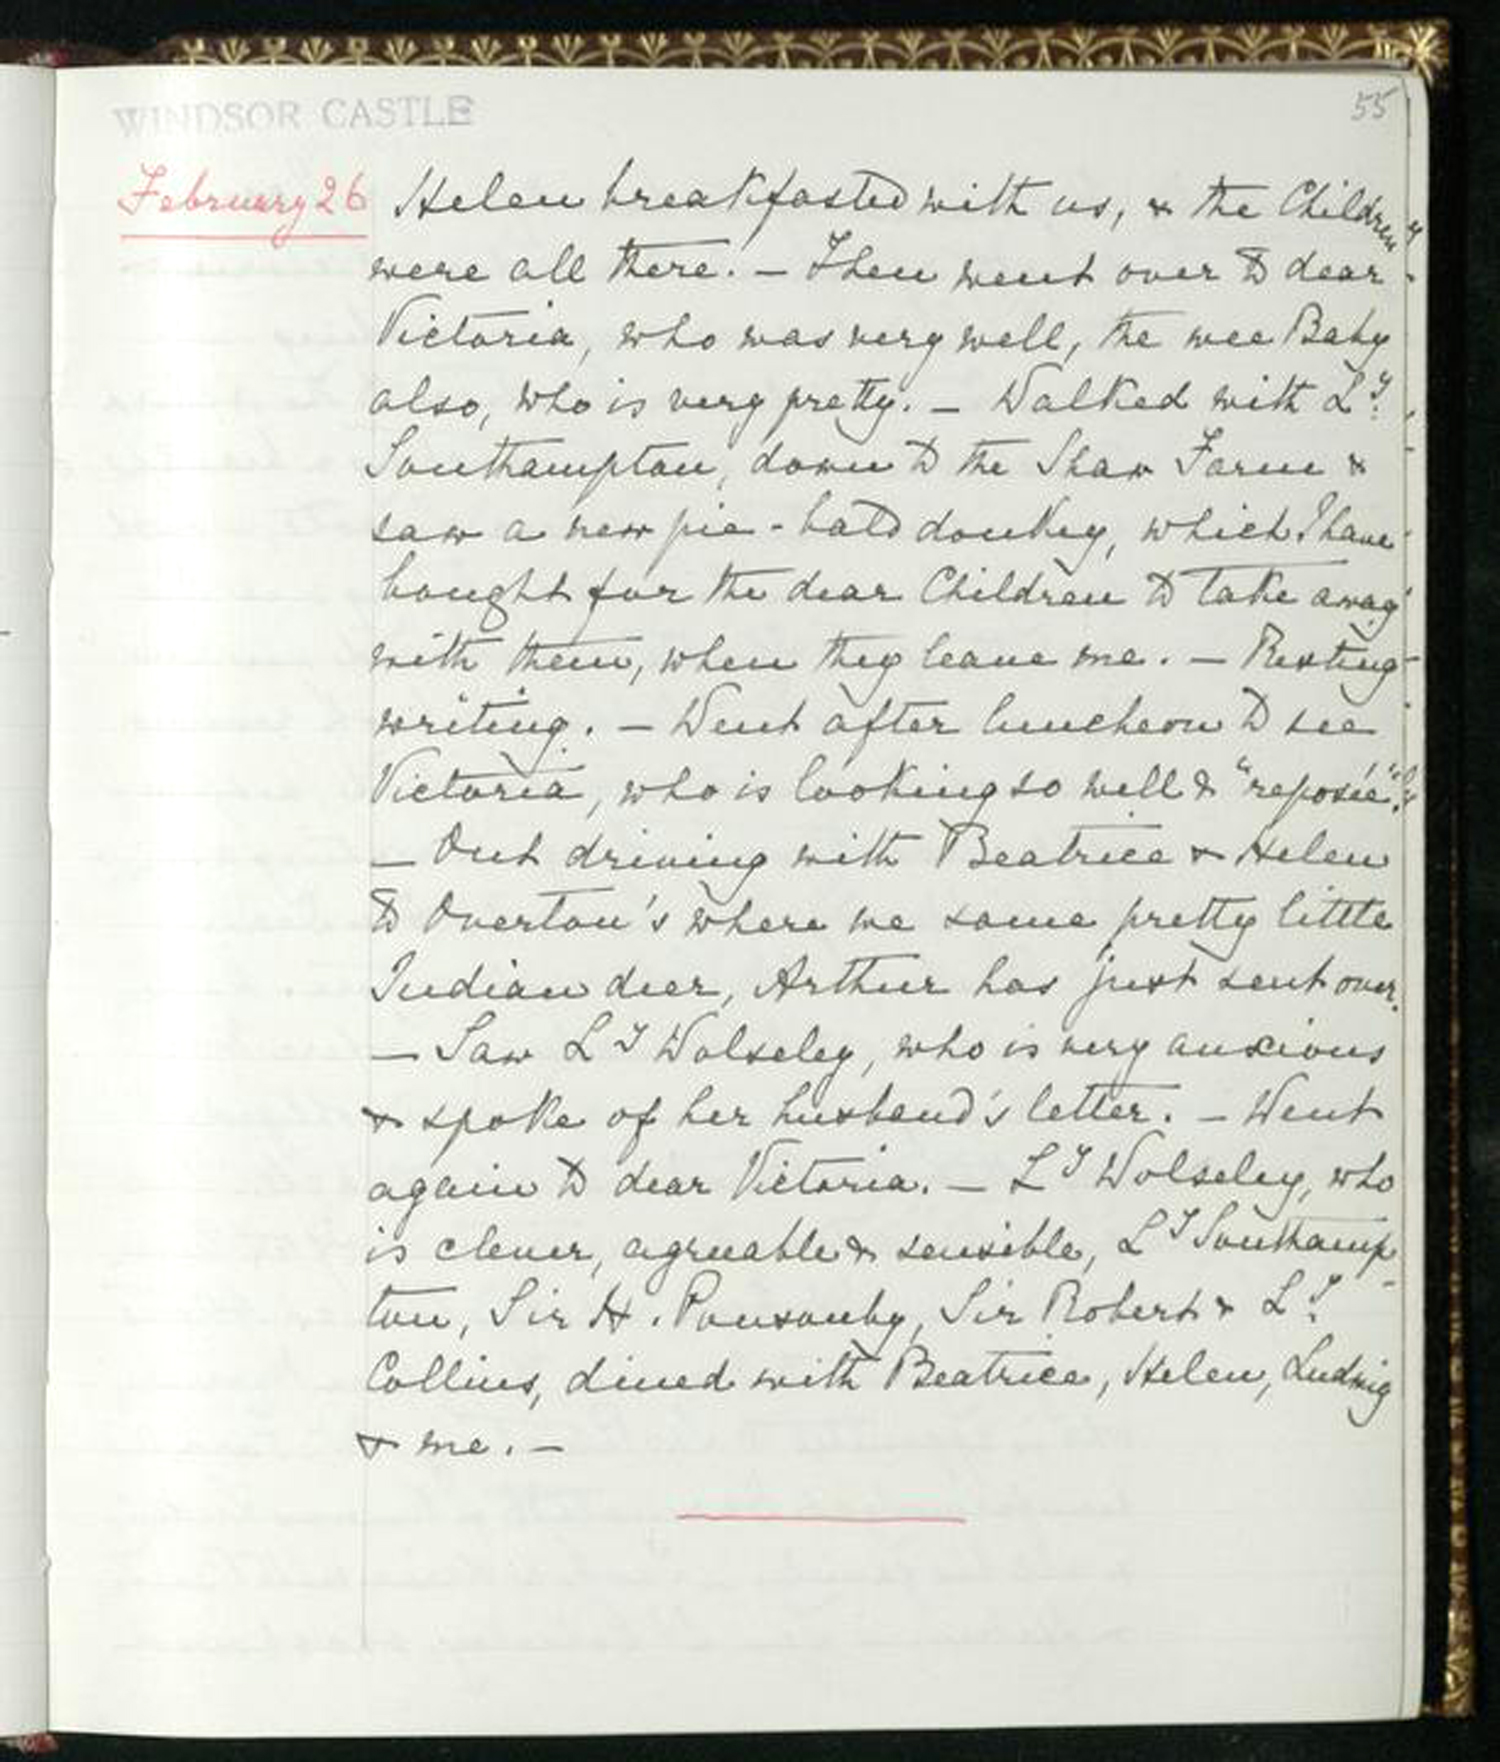 The Journal in which Queen Victoria recorded the birth of Prince Philip's mother, Princess Alice of Battenberg